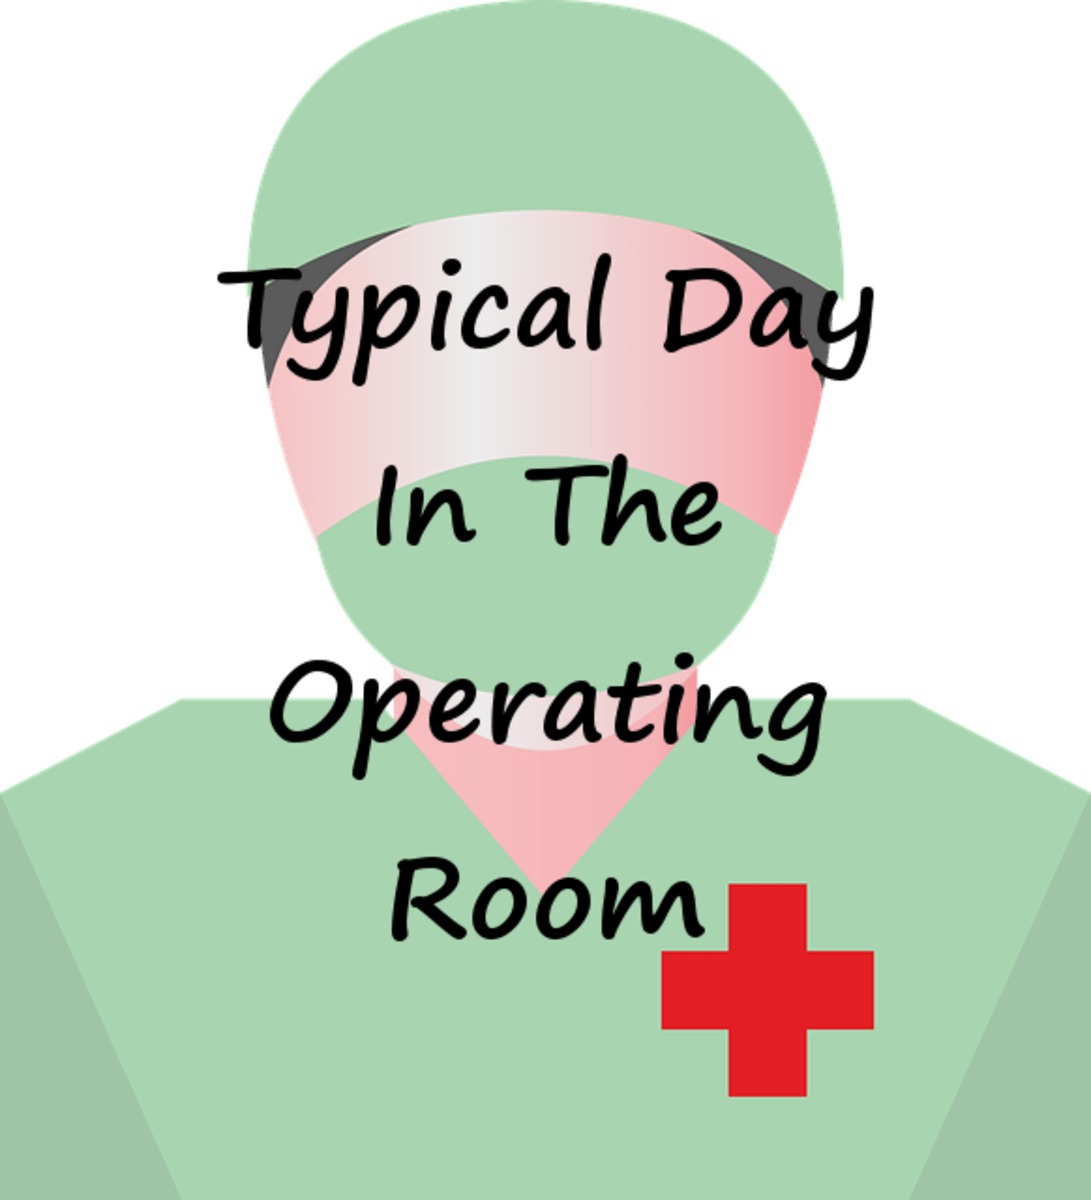 A Typical Day For A Circulating Nurse In The Operating Room LetterPile